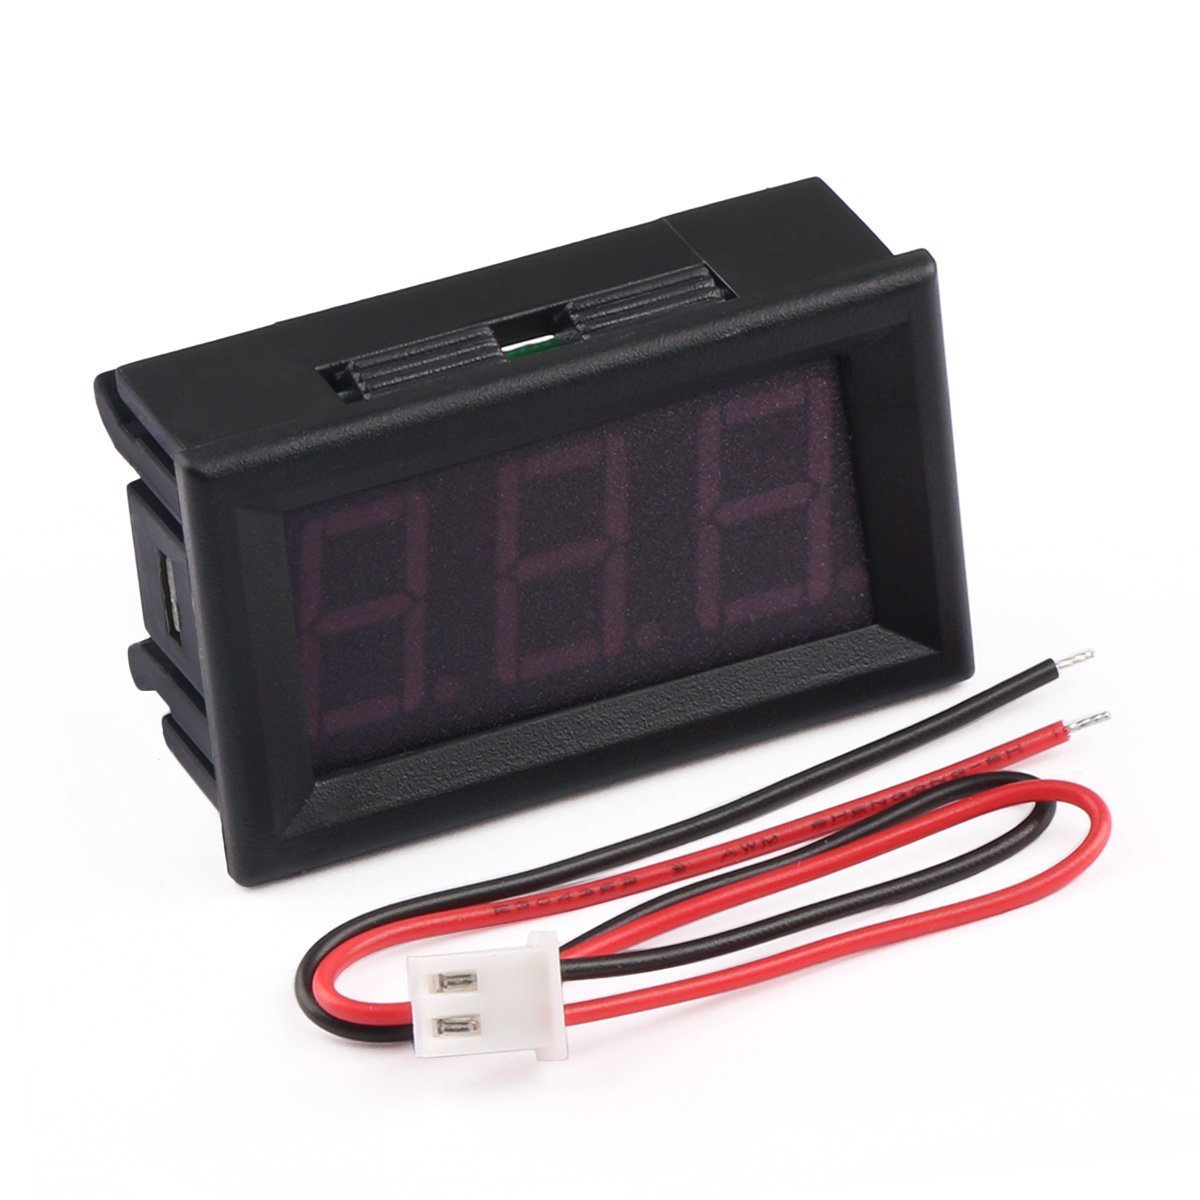 Digital Voltage Meter 12v Drok Led Display Voltmeter Panel Wiring Boat Precision Variable 2 Wires 3 Digits